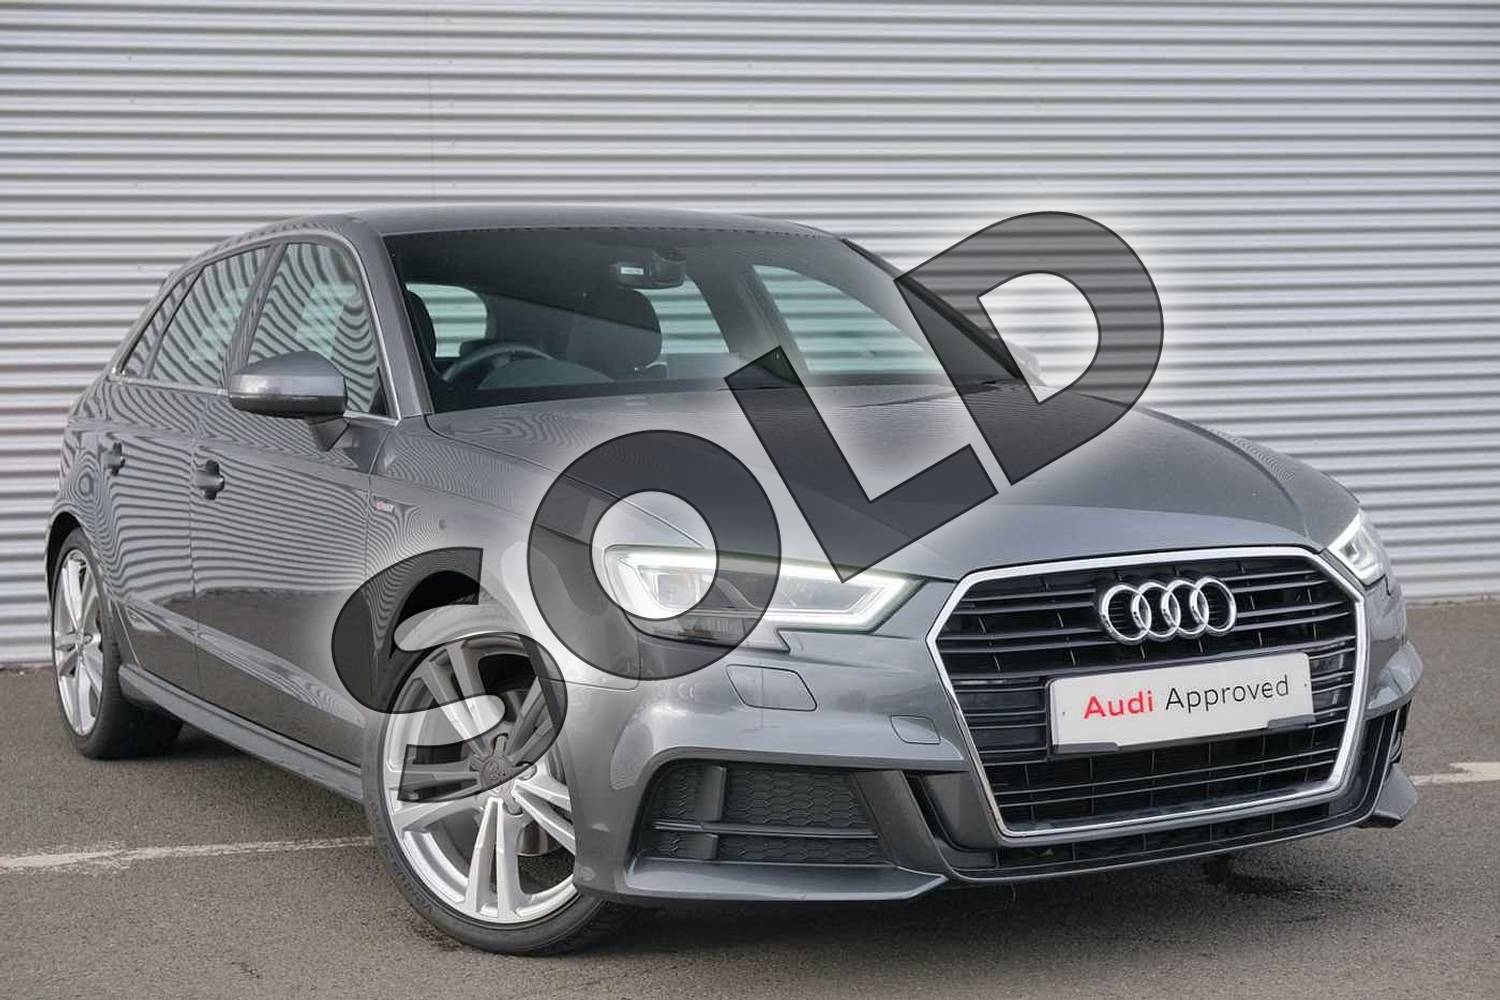 Audi A3 1 5 Tfsi S Line 5dr S Tronic For Sale At Coventry Audi Ref 021 U167782